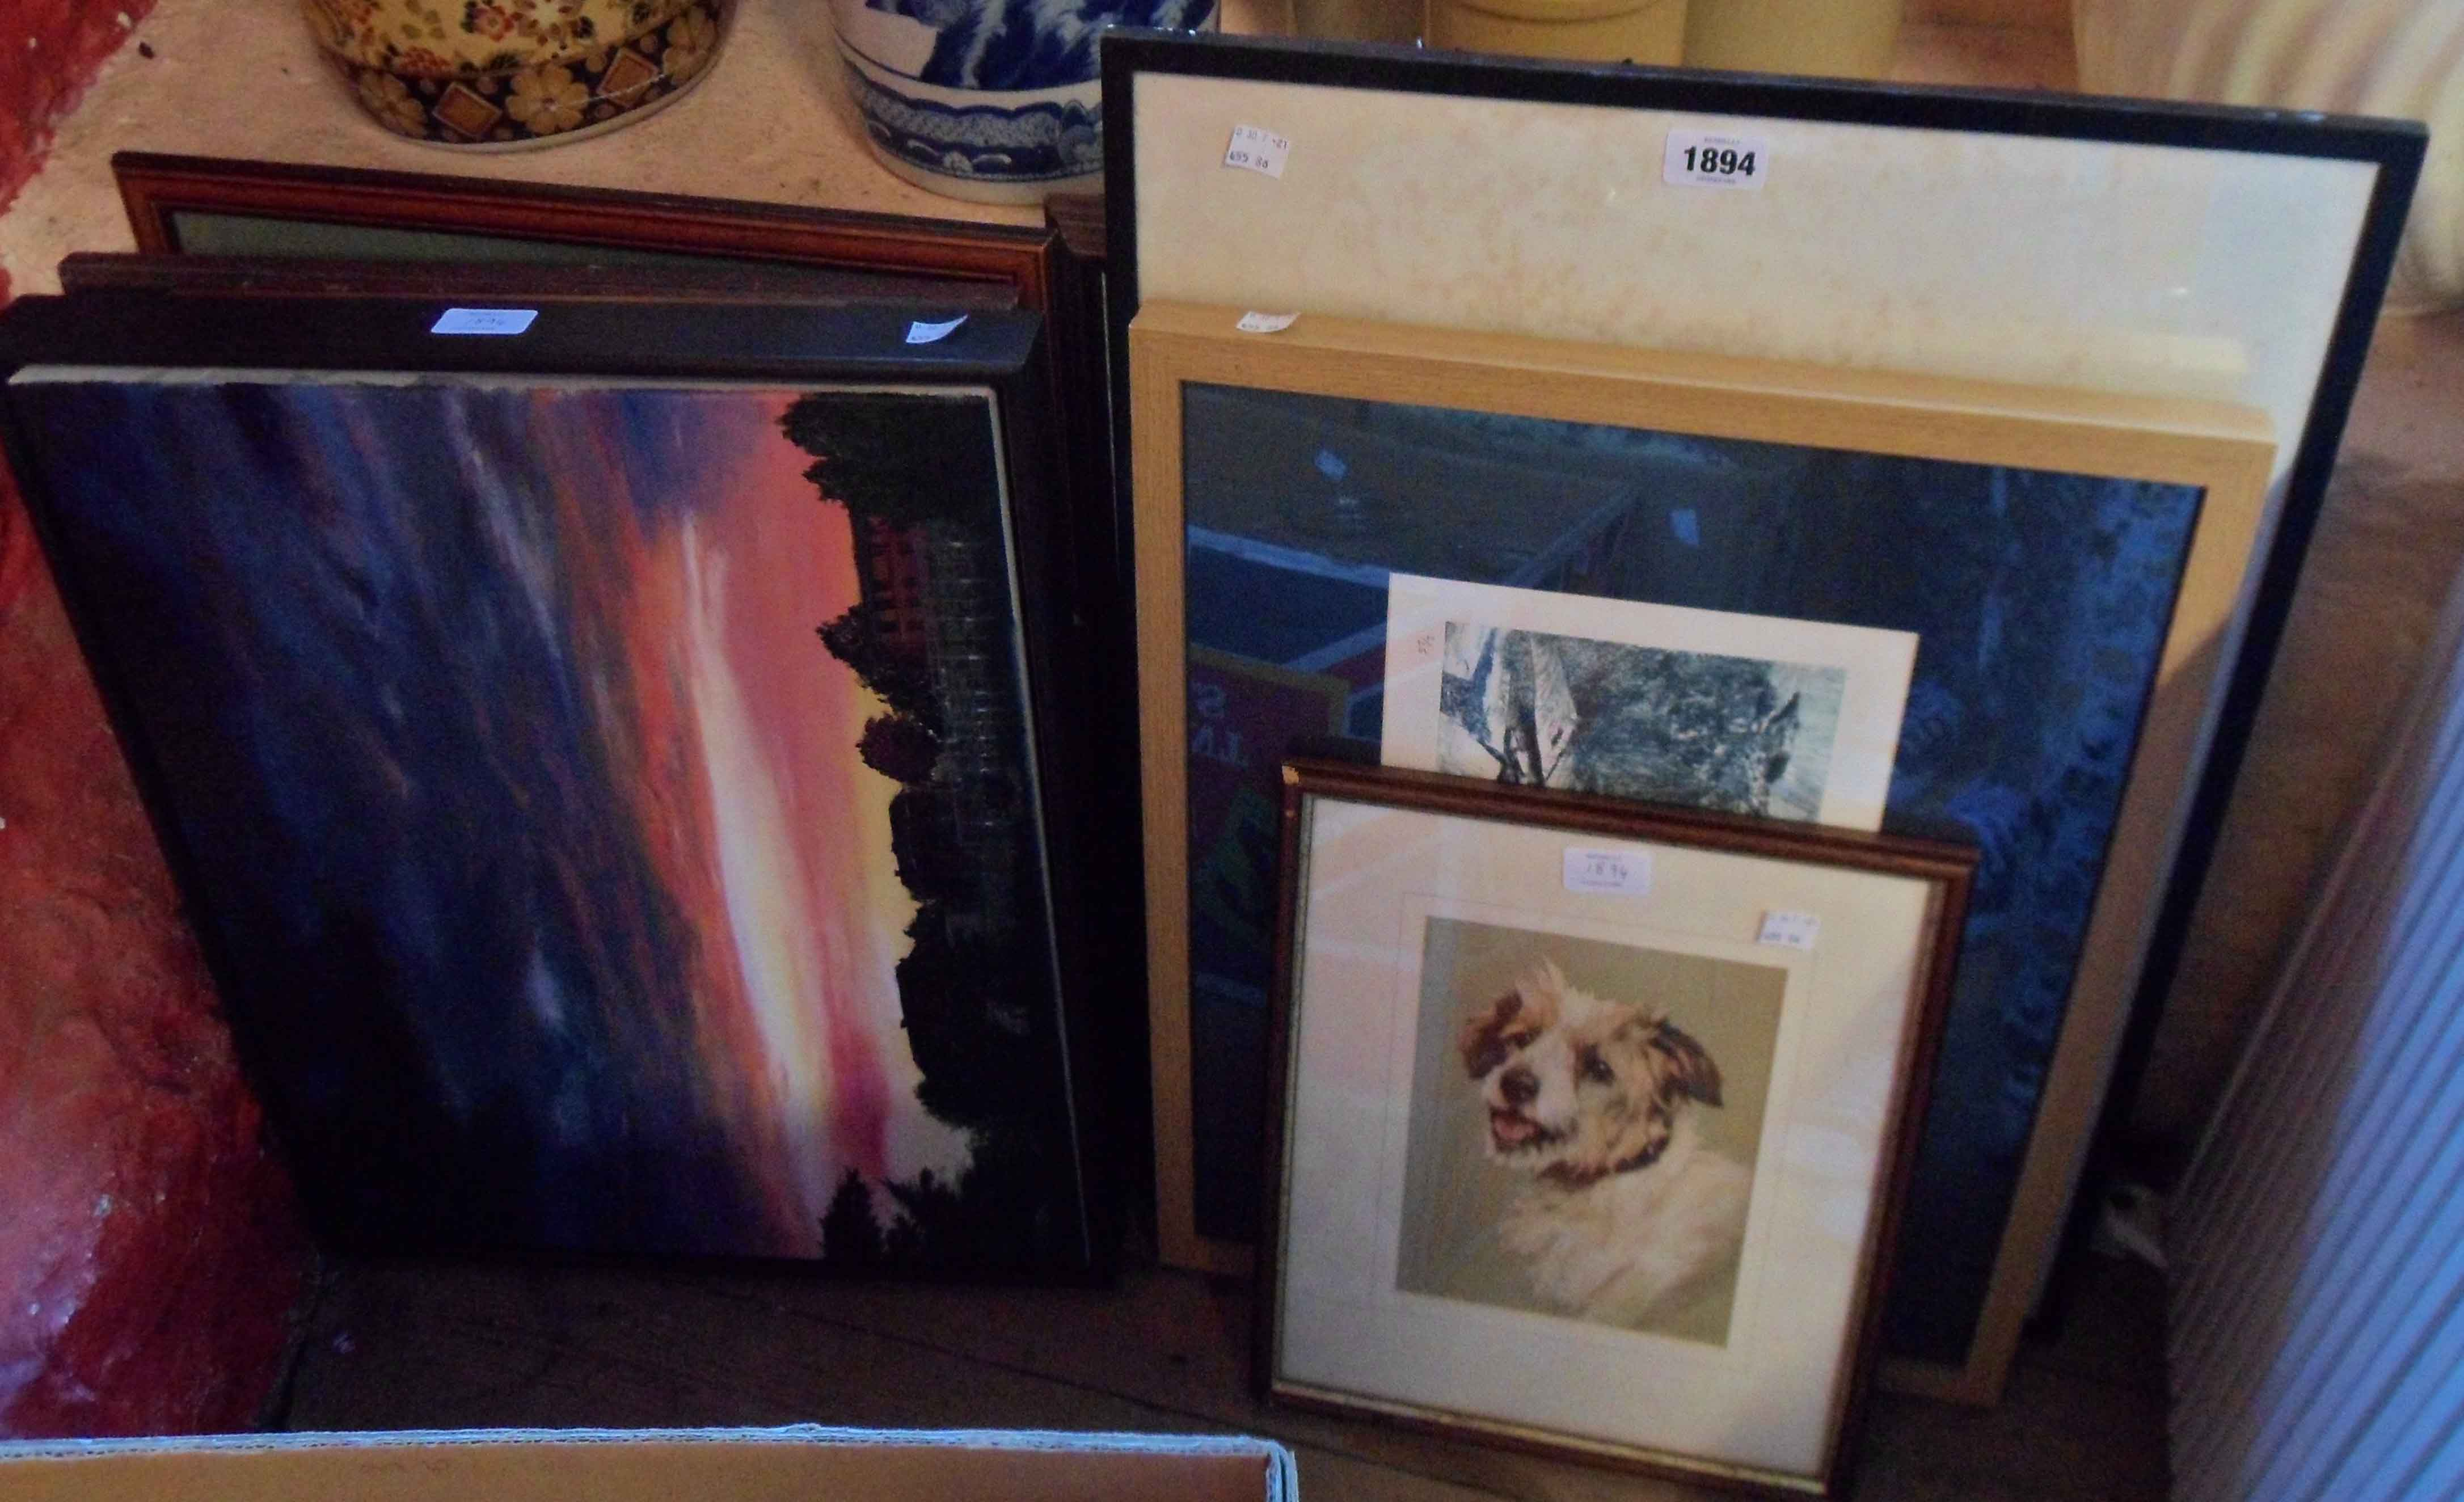 A collection of framed pictures including landscapes, animal studies, etc.